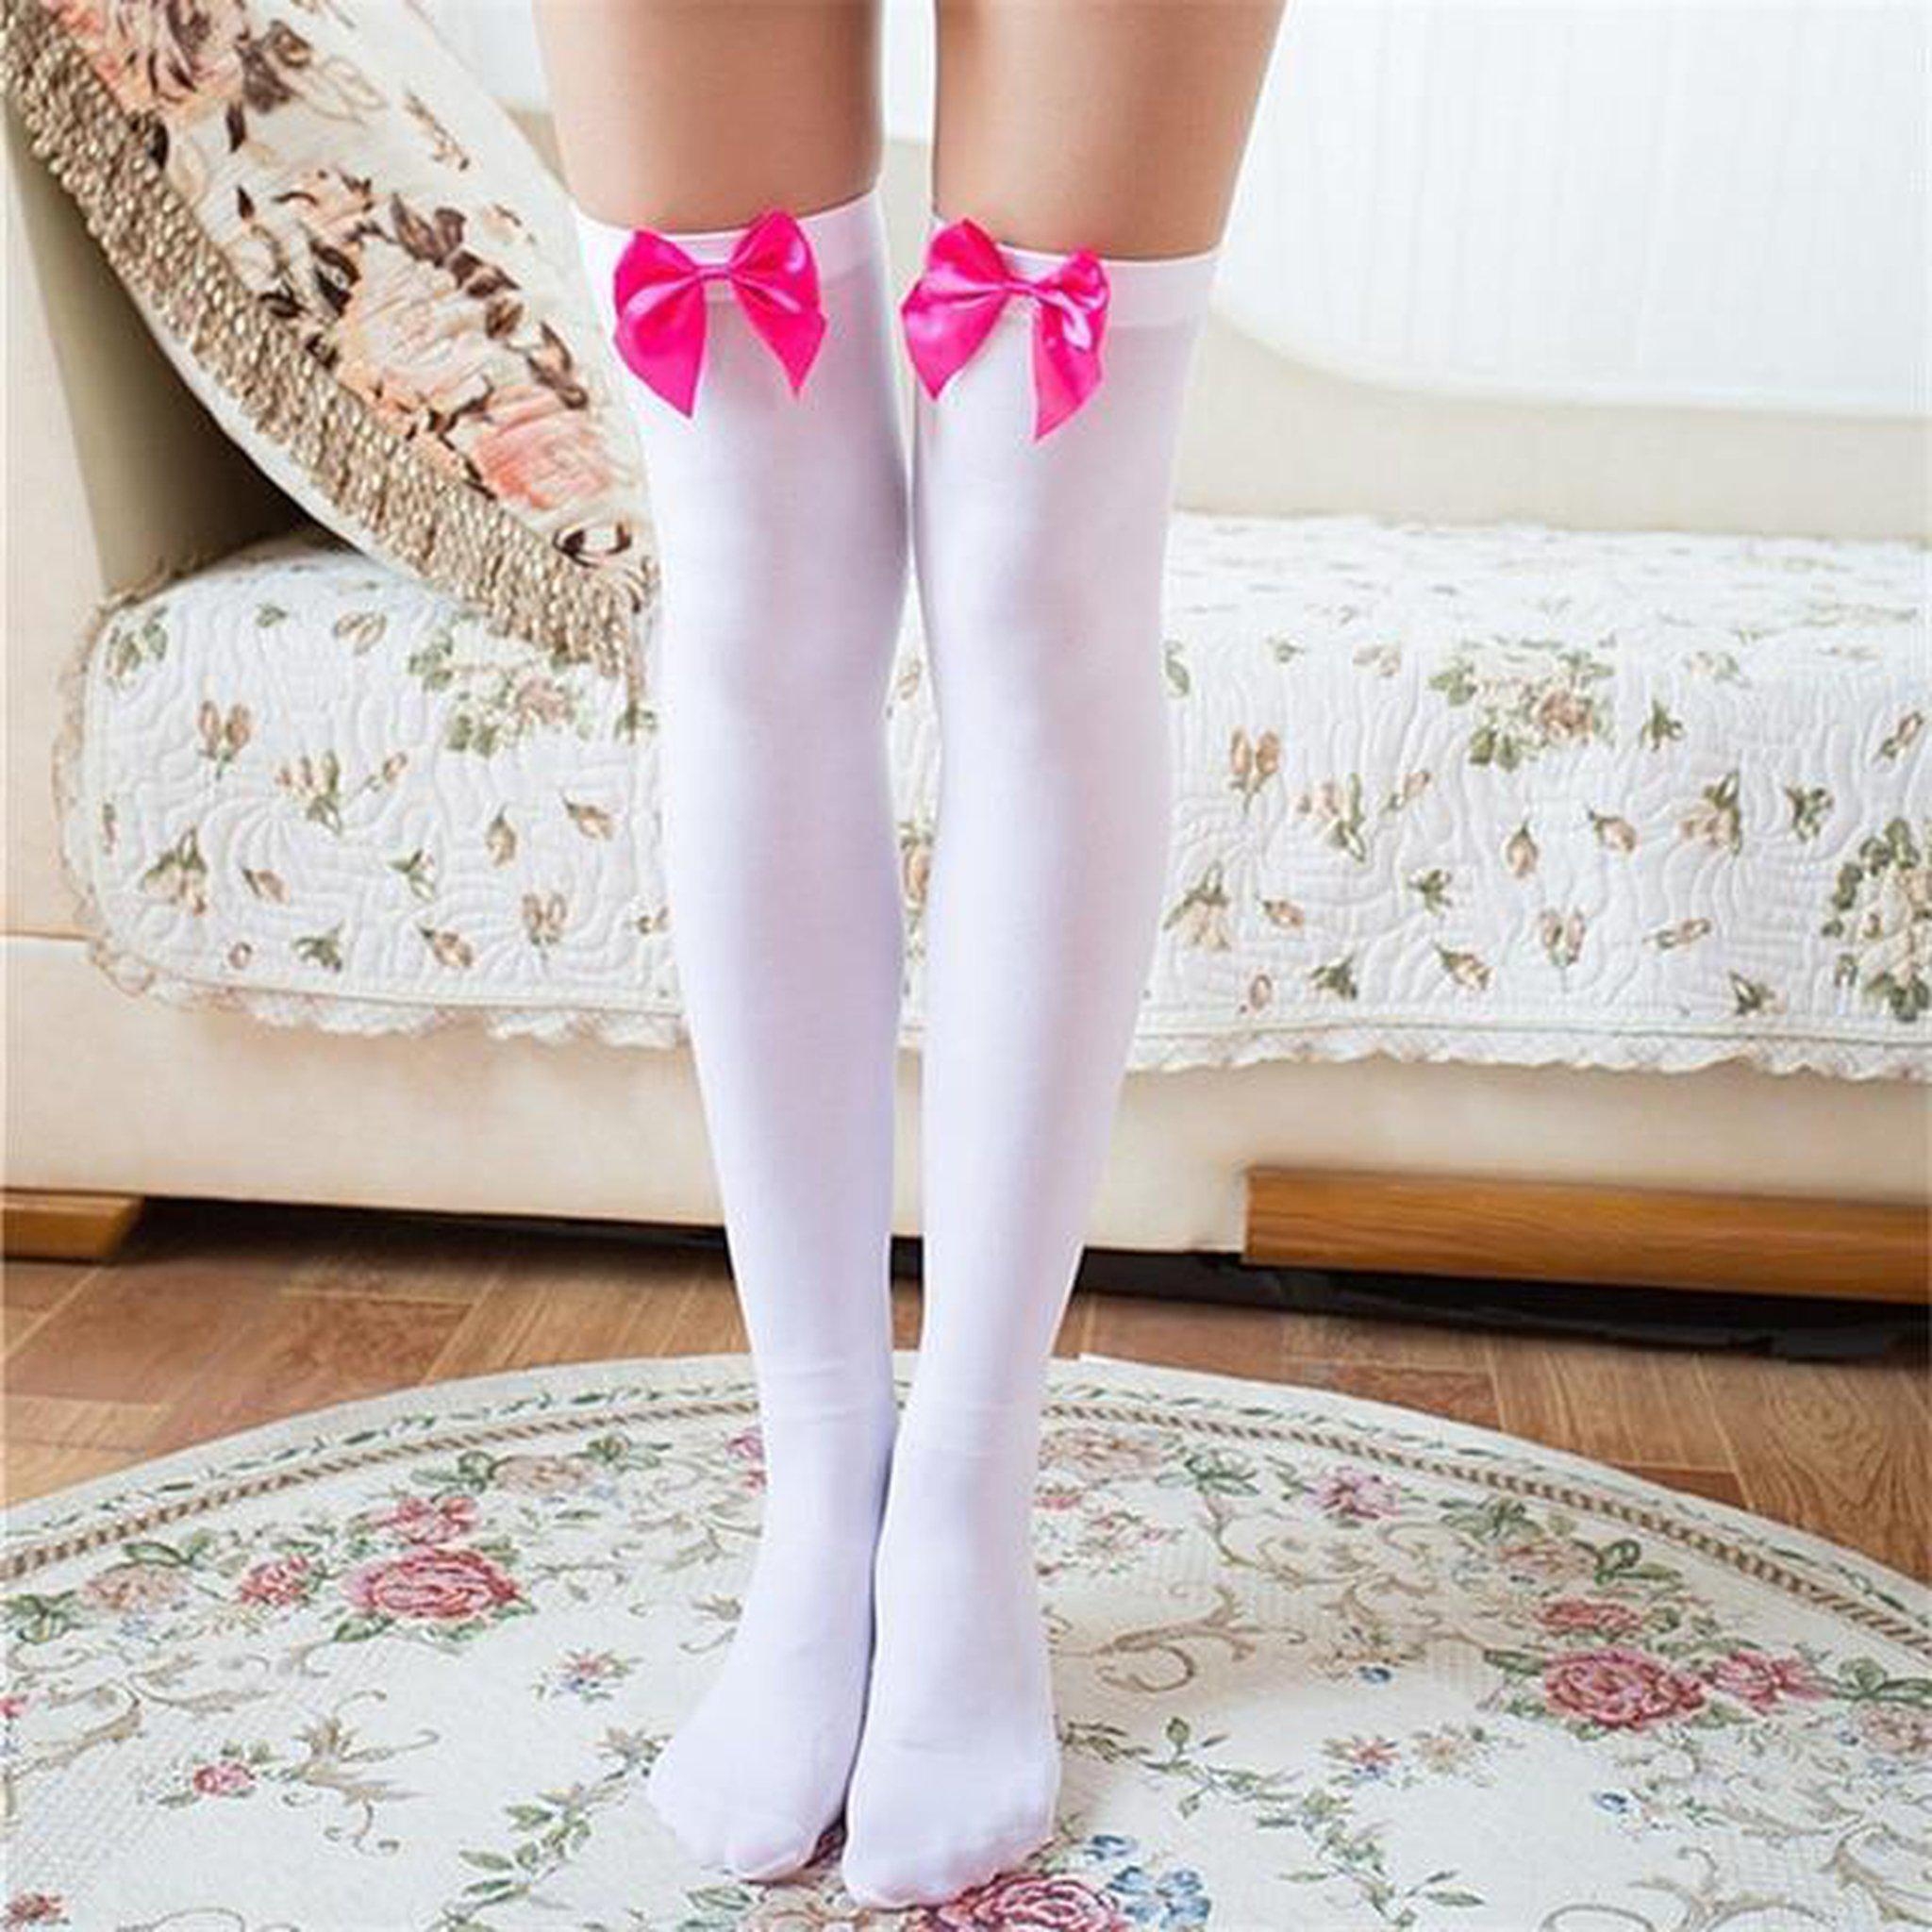 Sexy Bow Thigh High Stockings-Good Girl xox-White Rose Red-buy-bdsm-bondage-gear-tools-toys-online-good-girl-xox